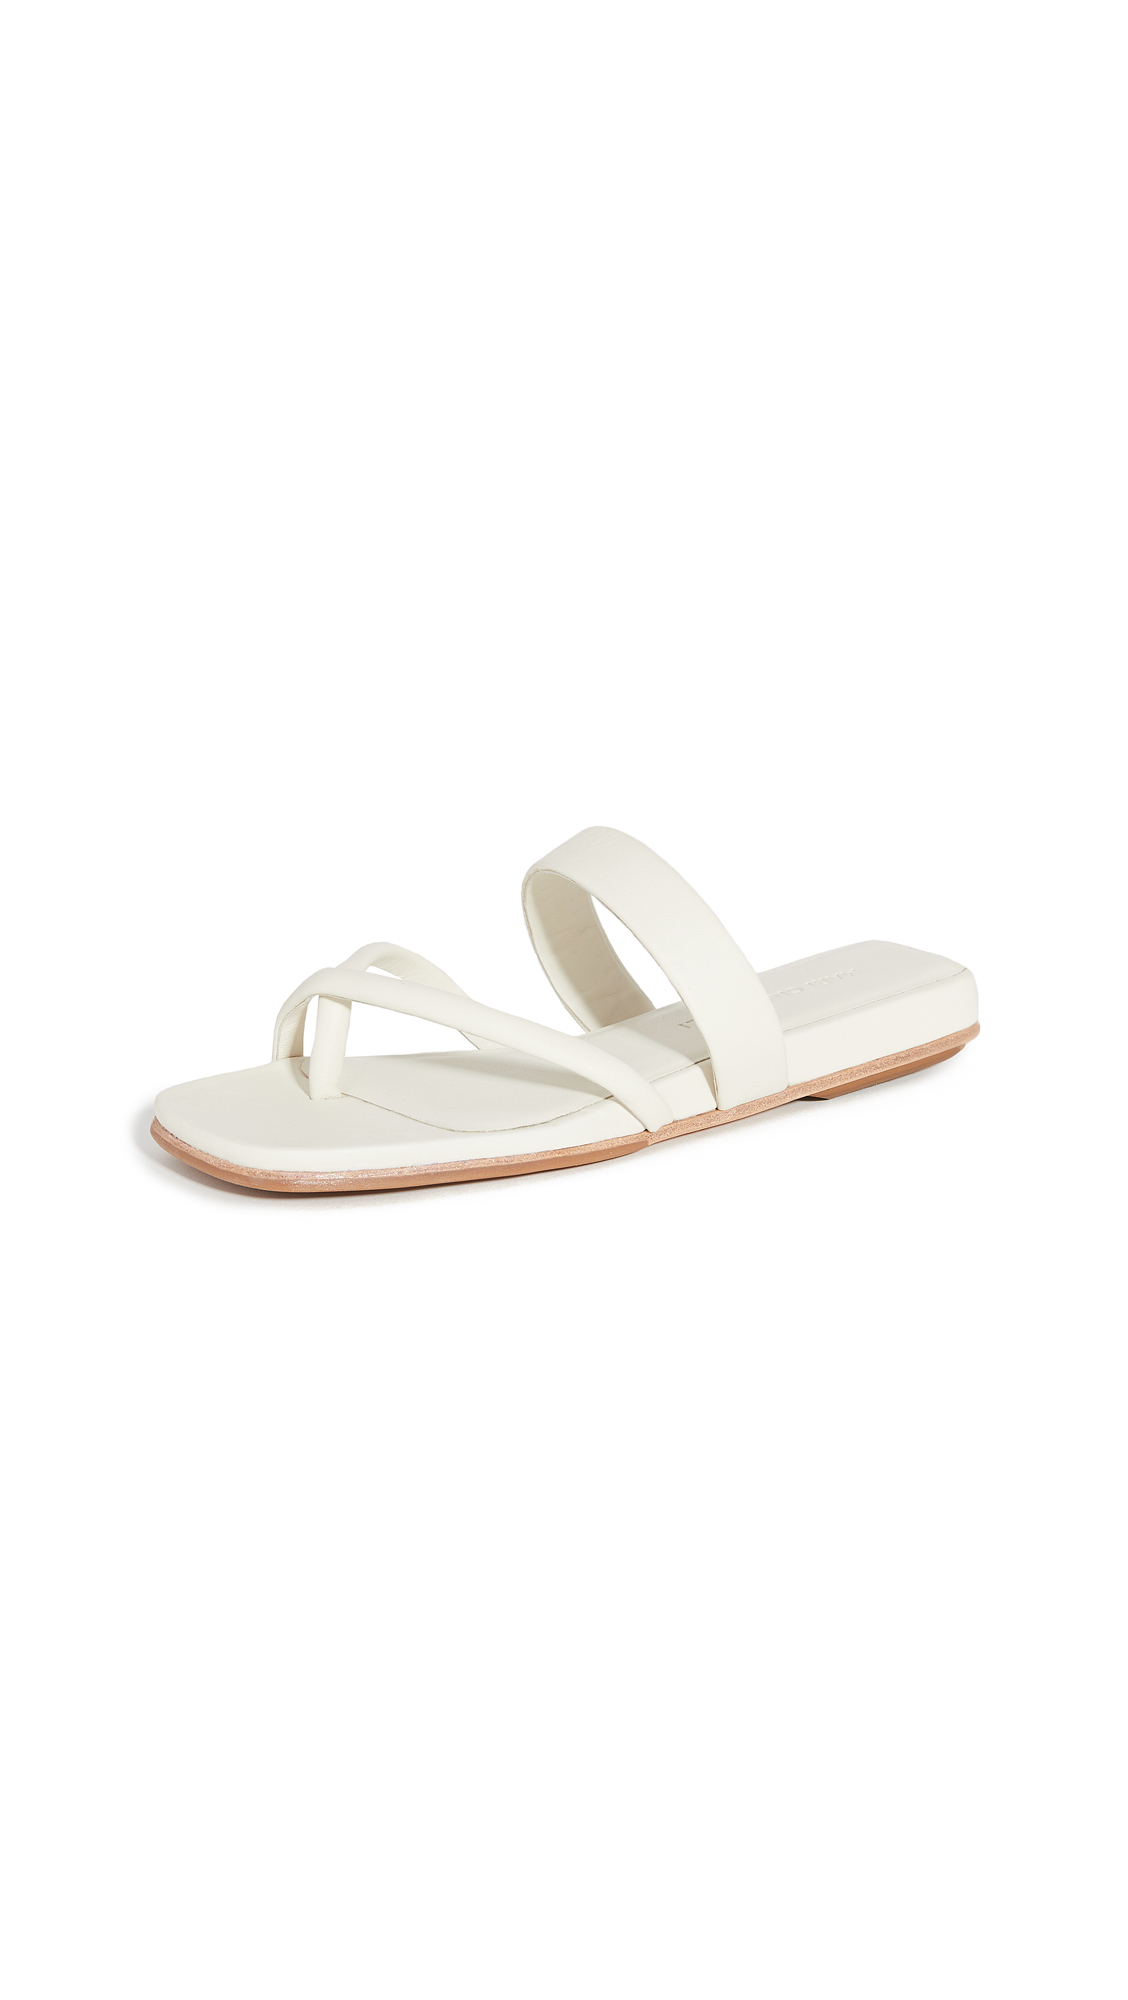 Mari Giudicelli Travel Sandals - 30% Off Sale